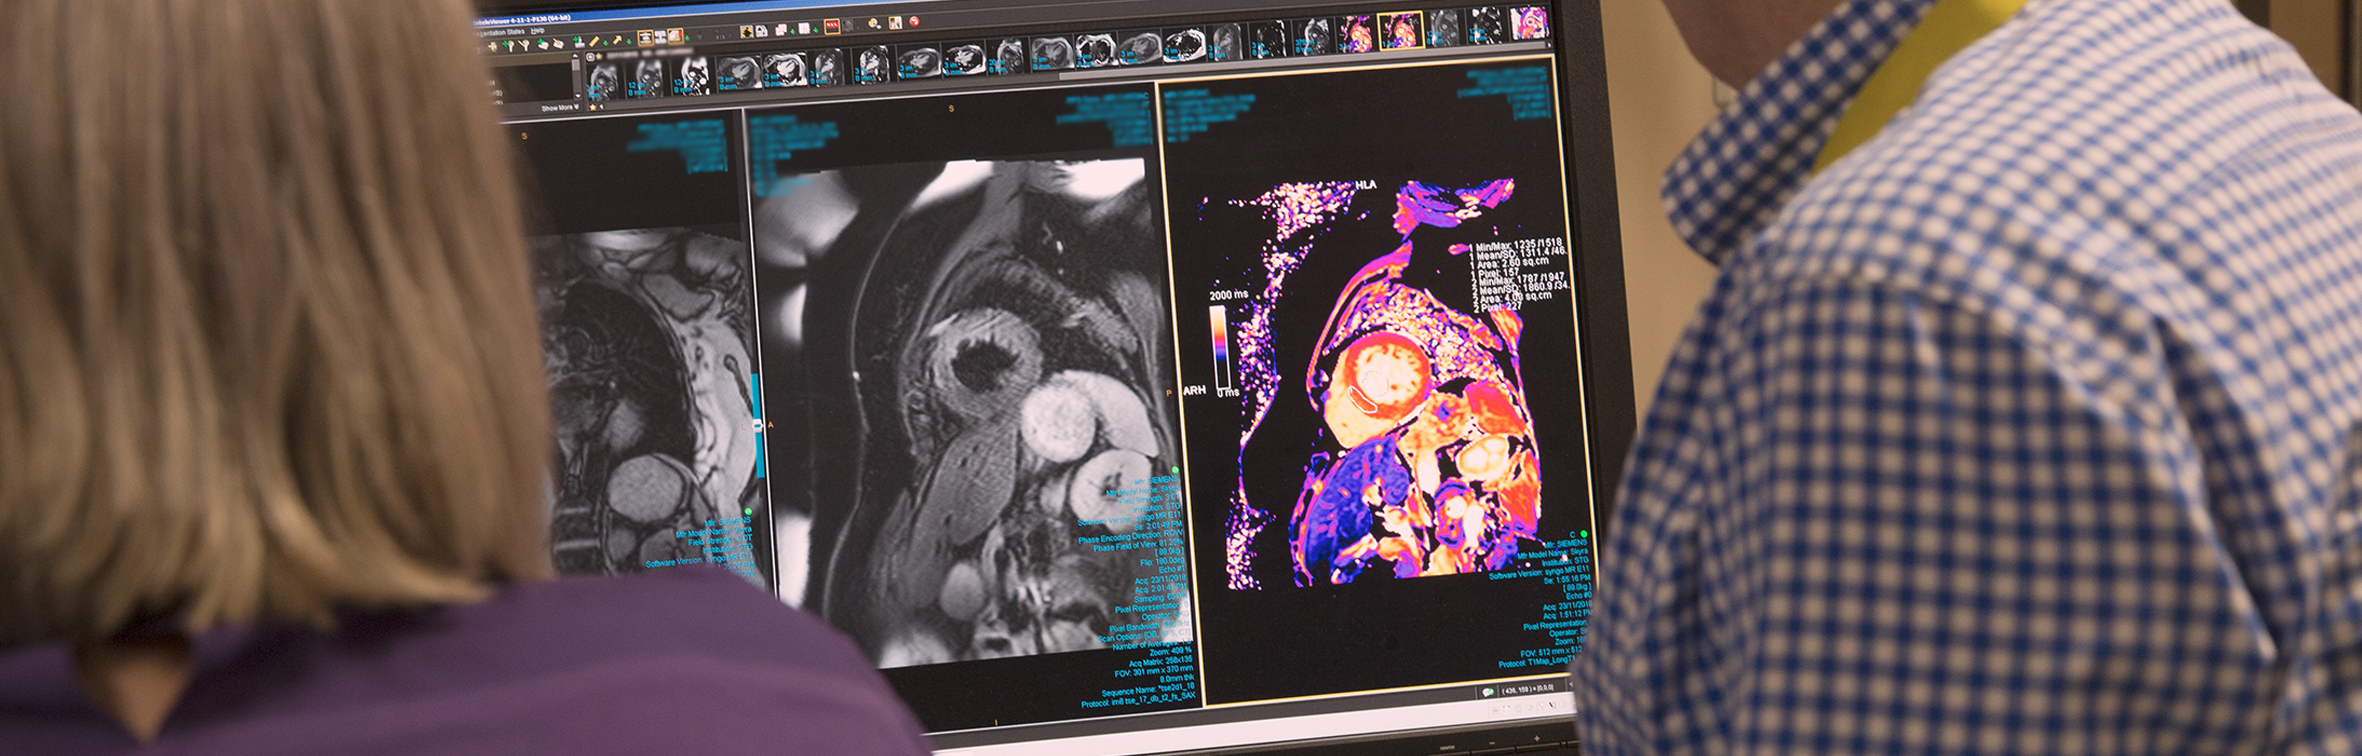 Heart Vision - Image 3